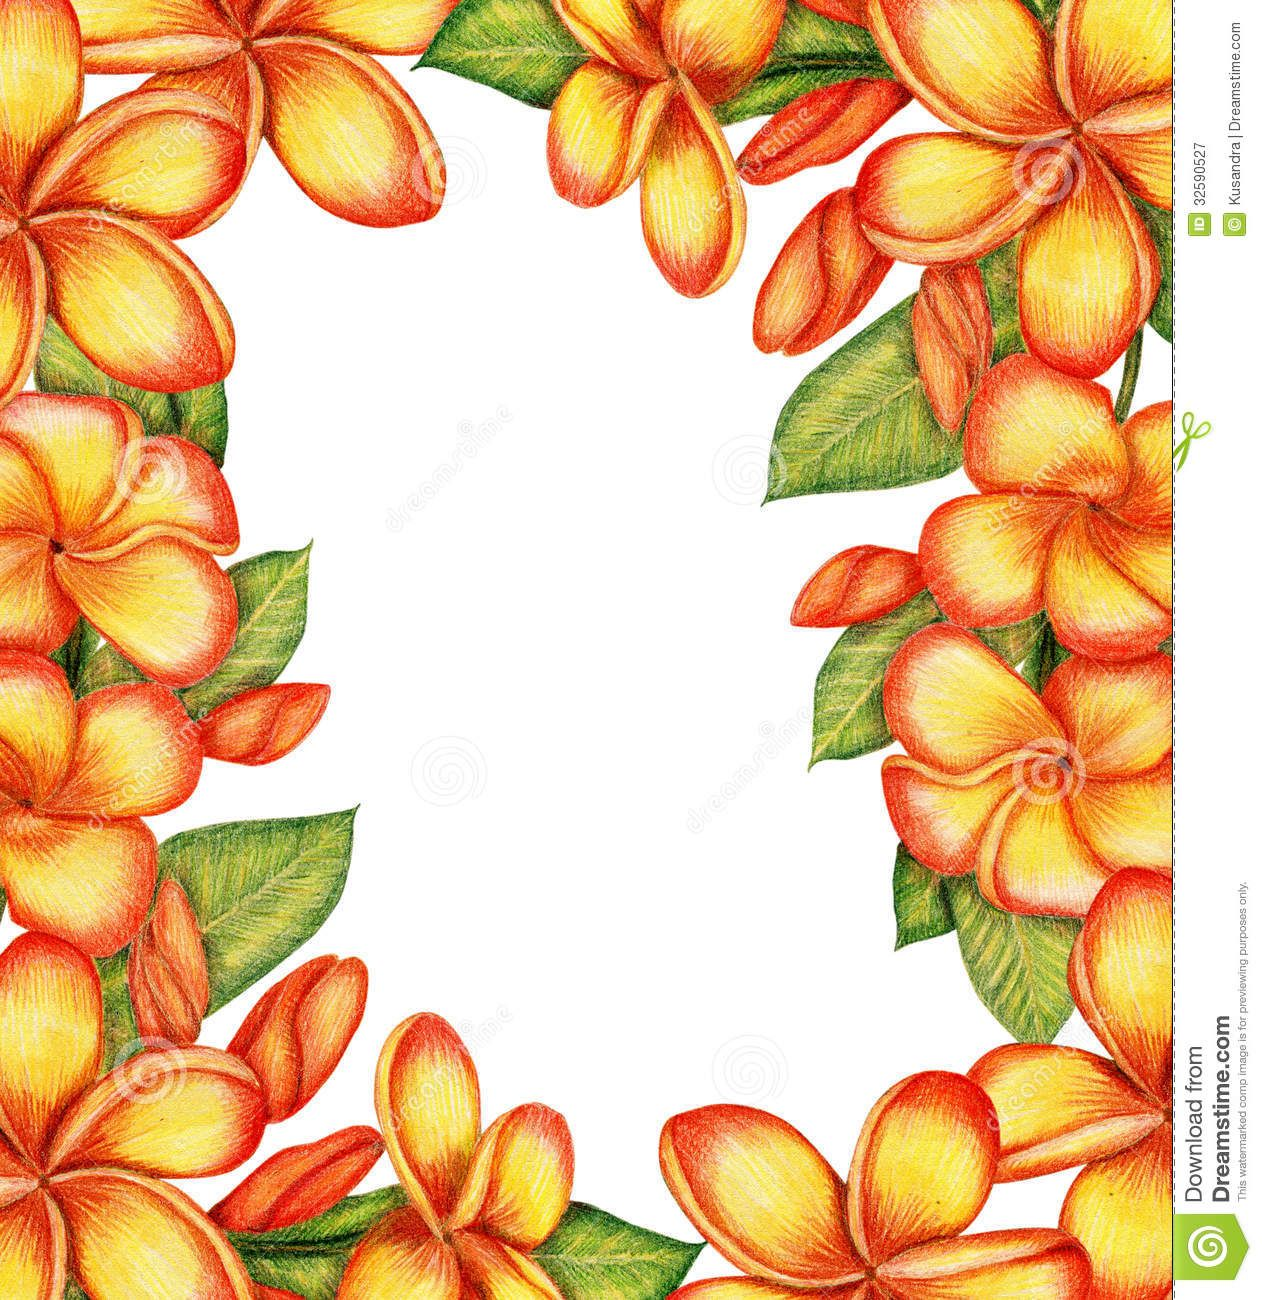 Free download Plumeria Flower Lei Clip Art Clipart Download.